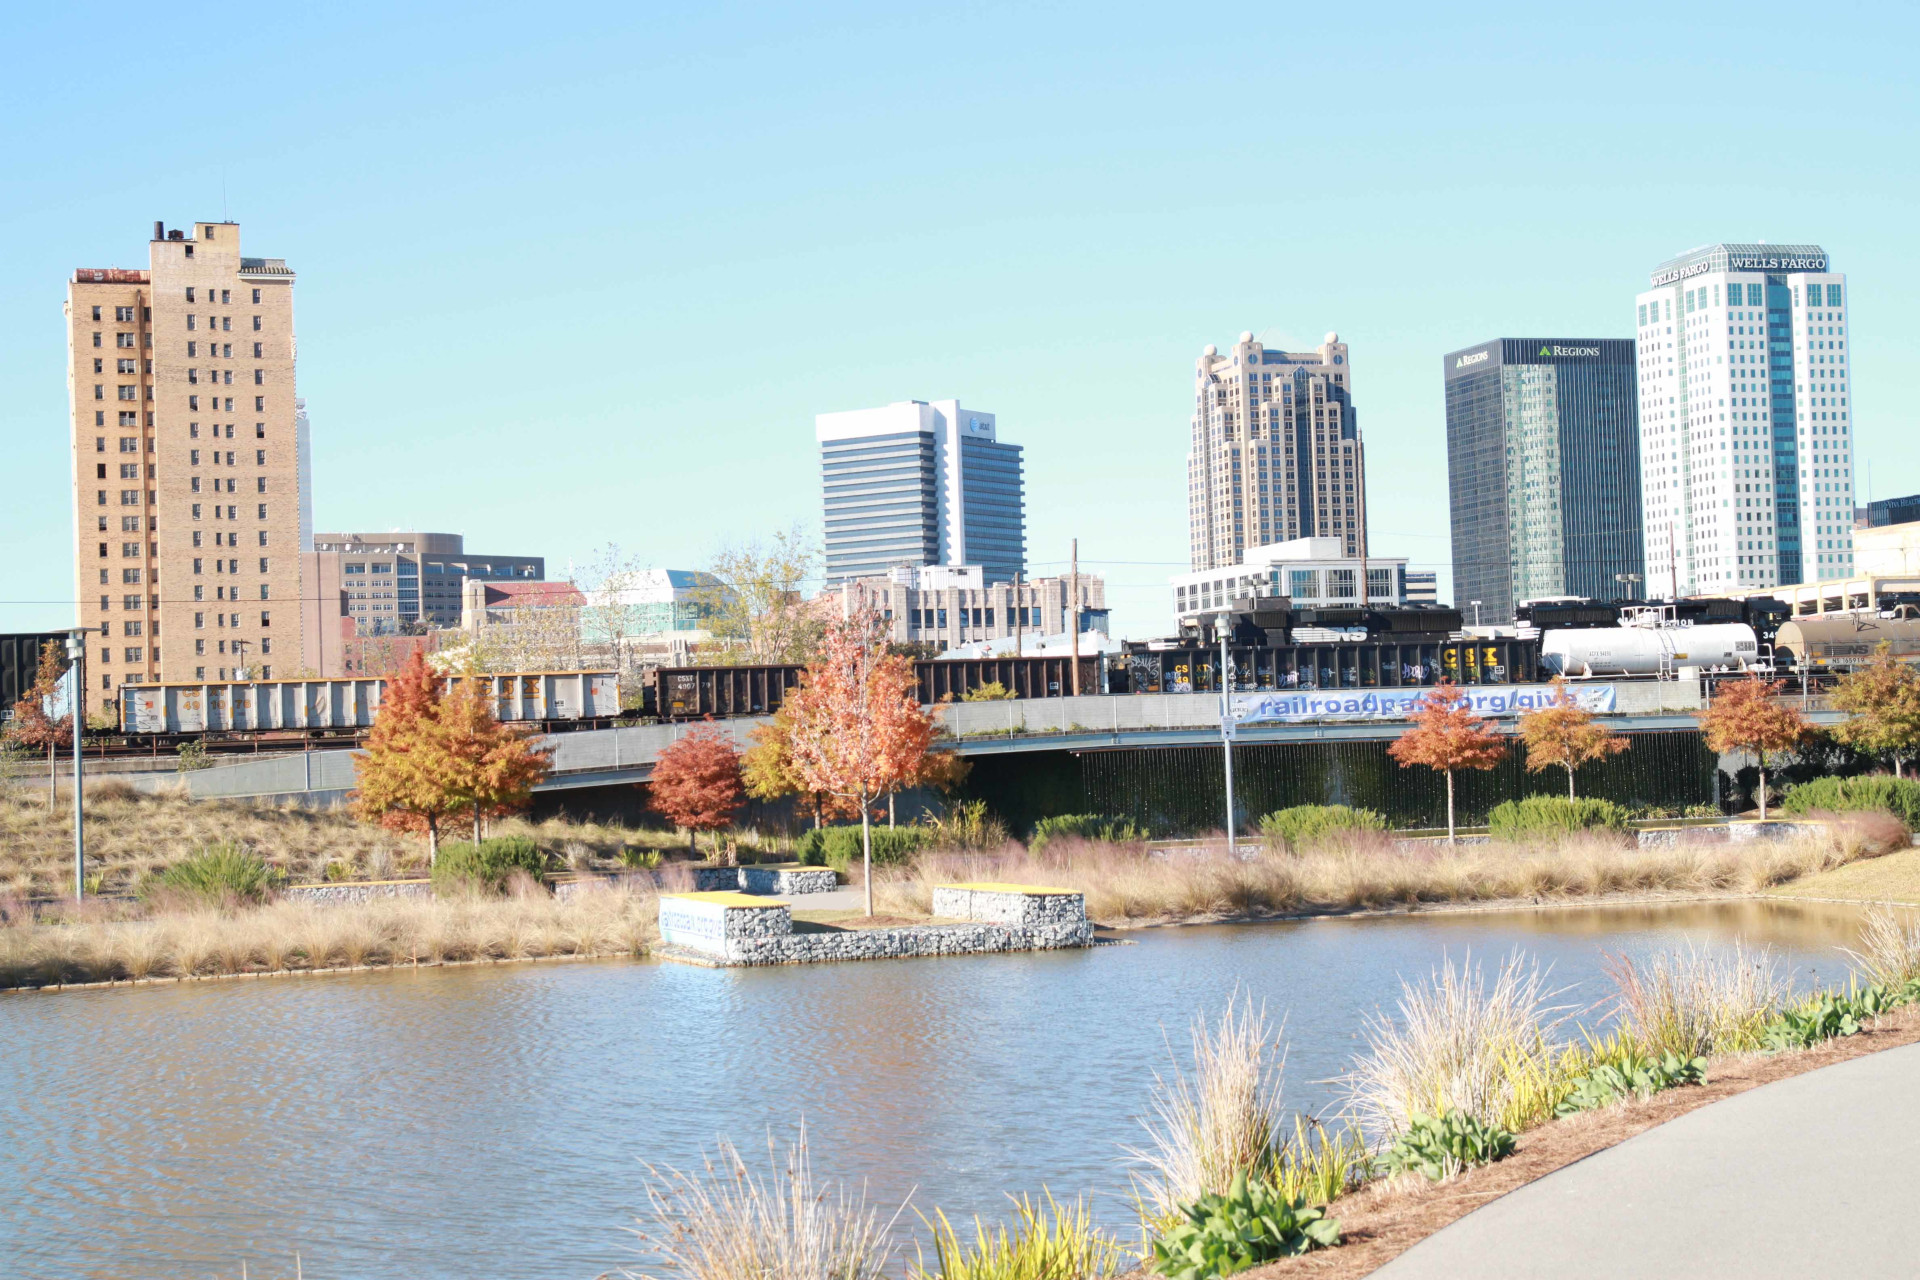 New Rebound Bham initiative aims to support local small businesses